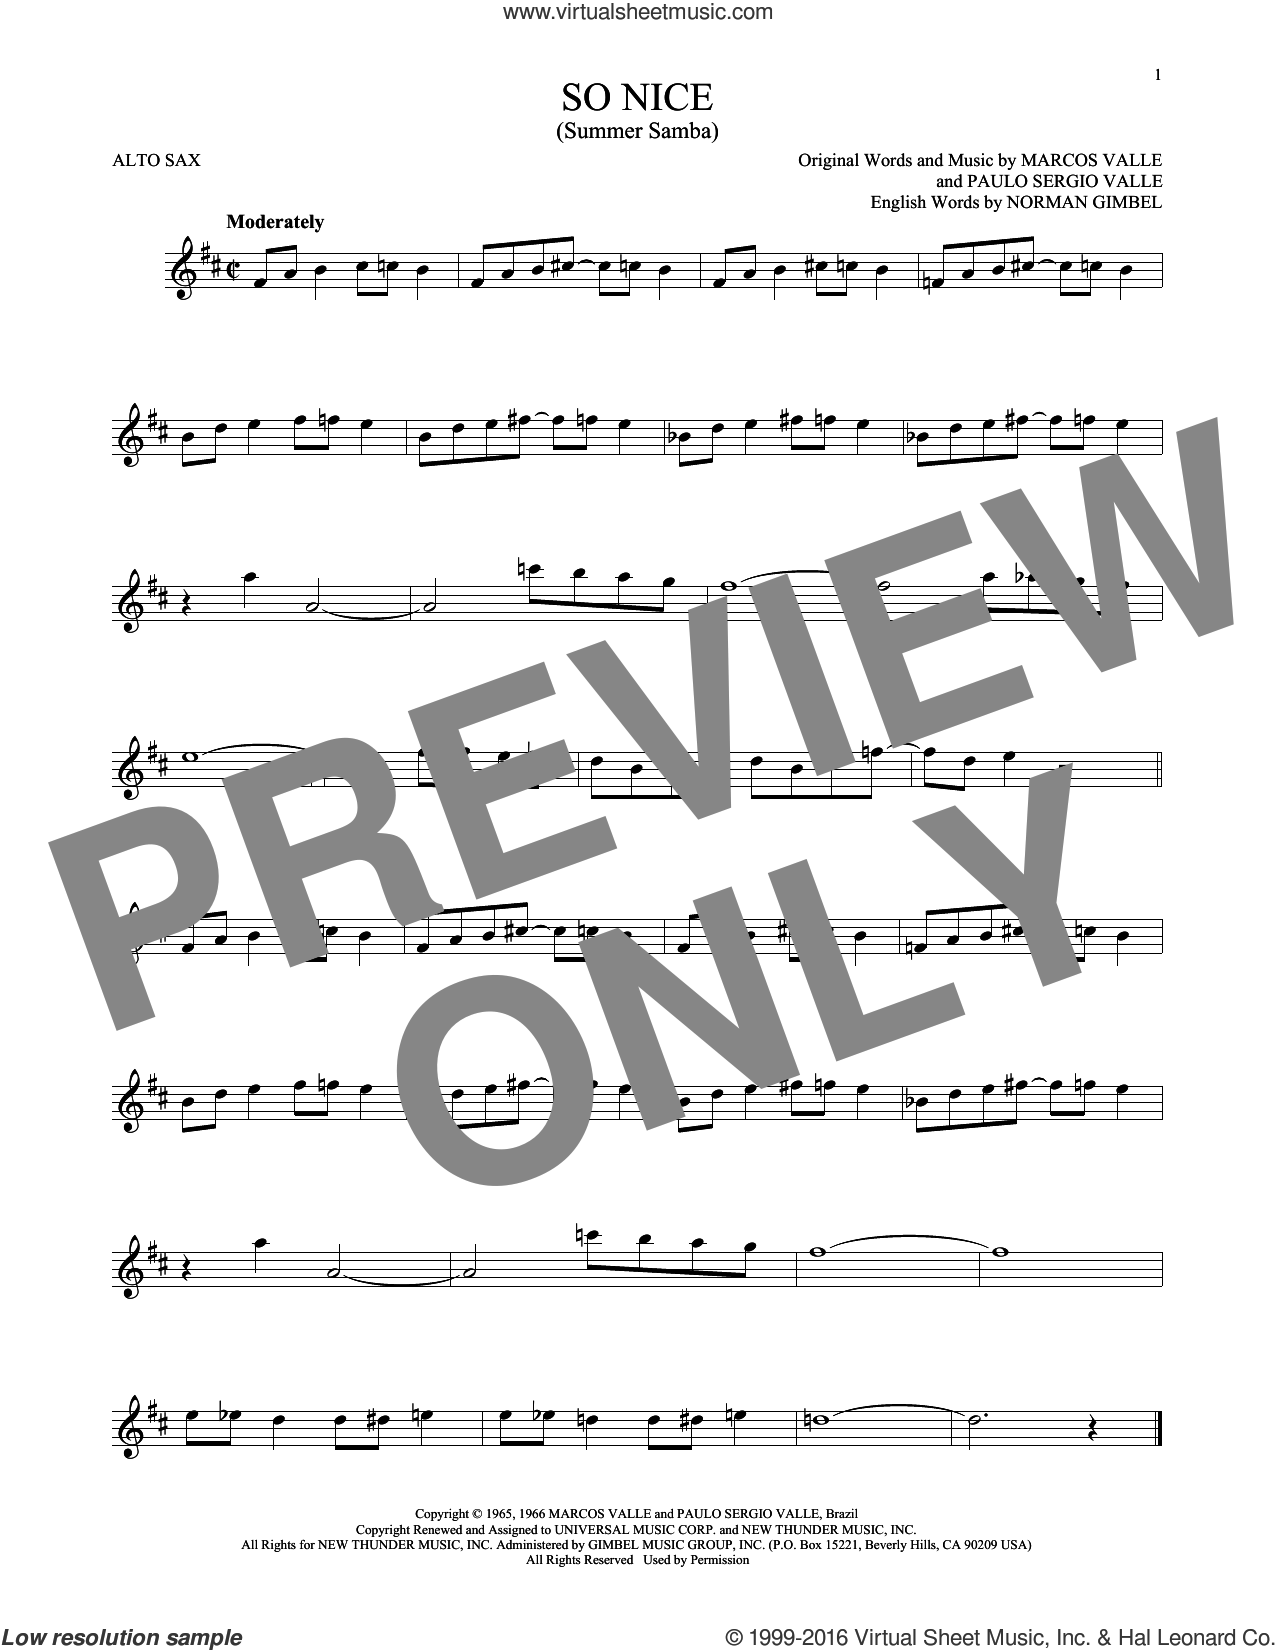 So Nice (Summer Samba) sheet music for alto saxophone solo by Paulo Sergio Valle